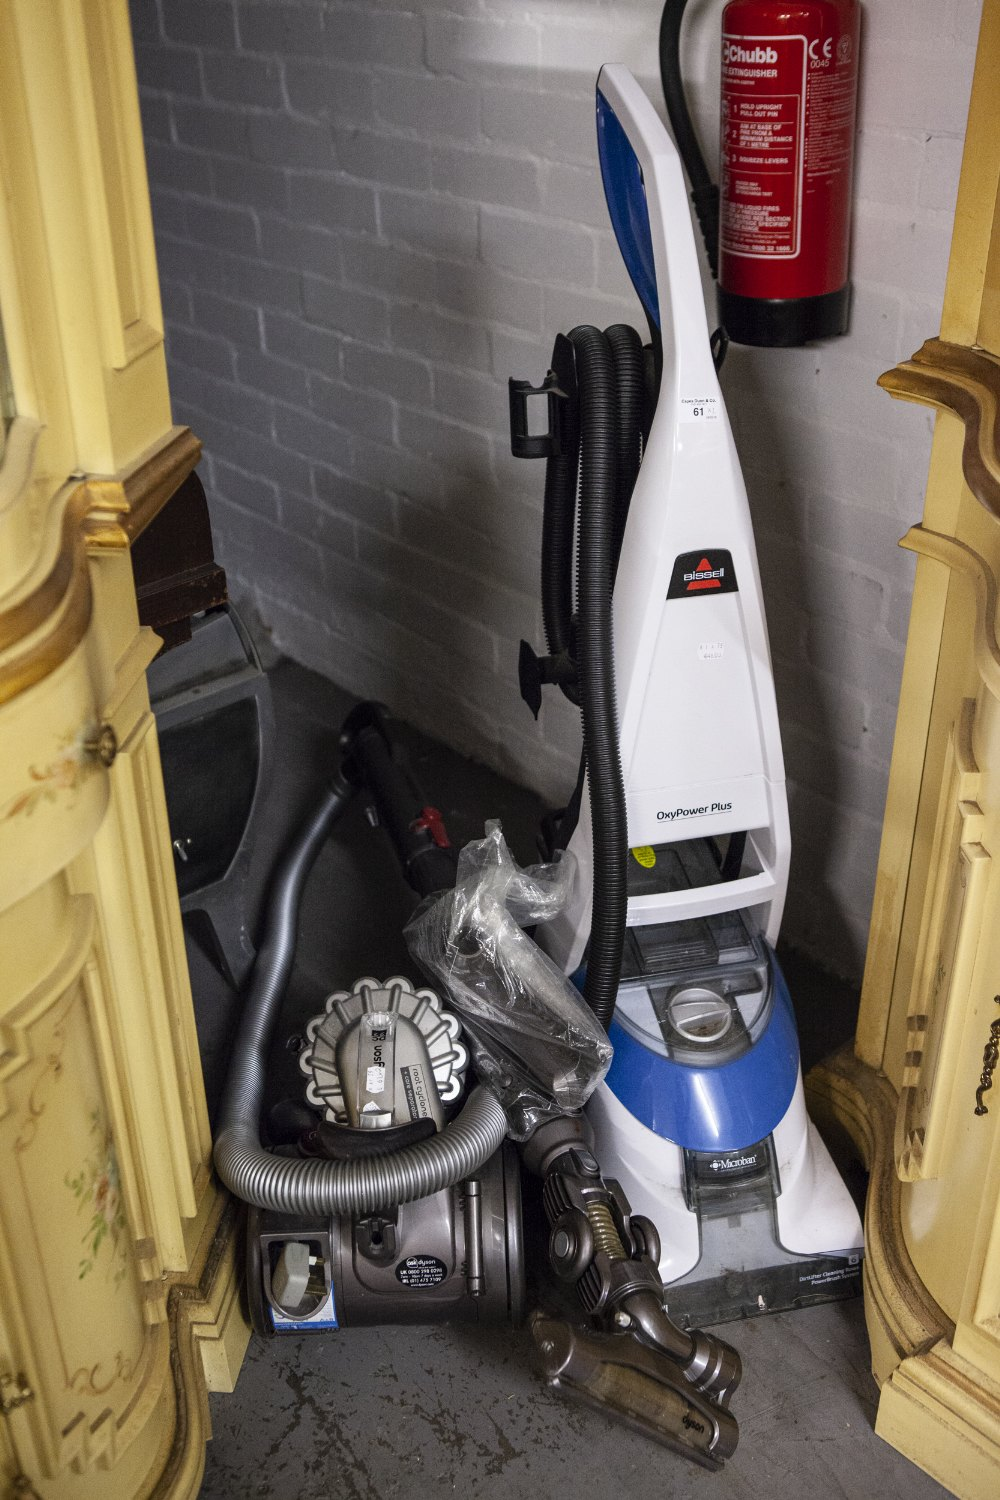 Lot 61 - DYSON BABY VACUUM CLEANER, BISSELL OXYPOWER PLUS MICROBAN UPRIGHT VACUUM CLEANER